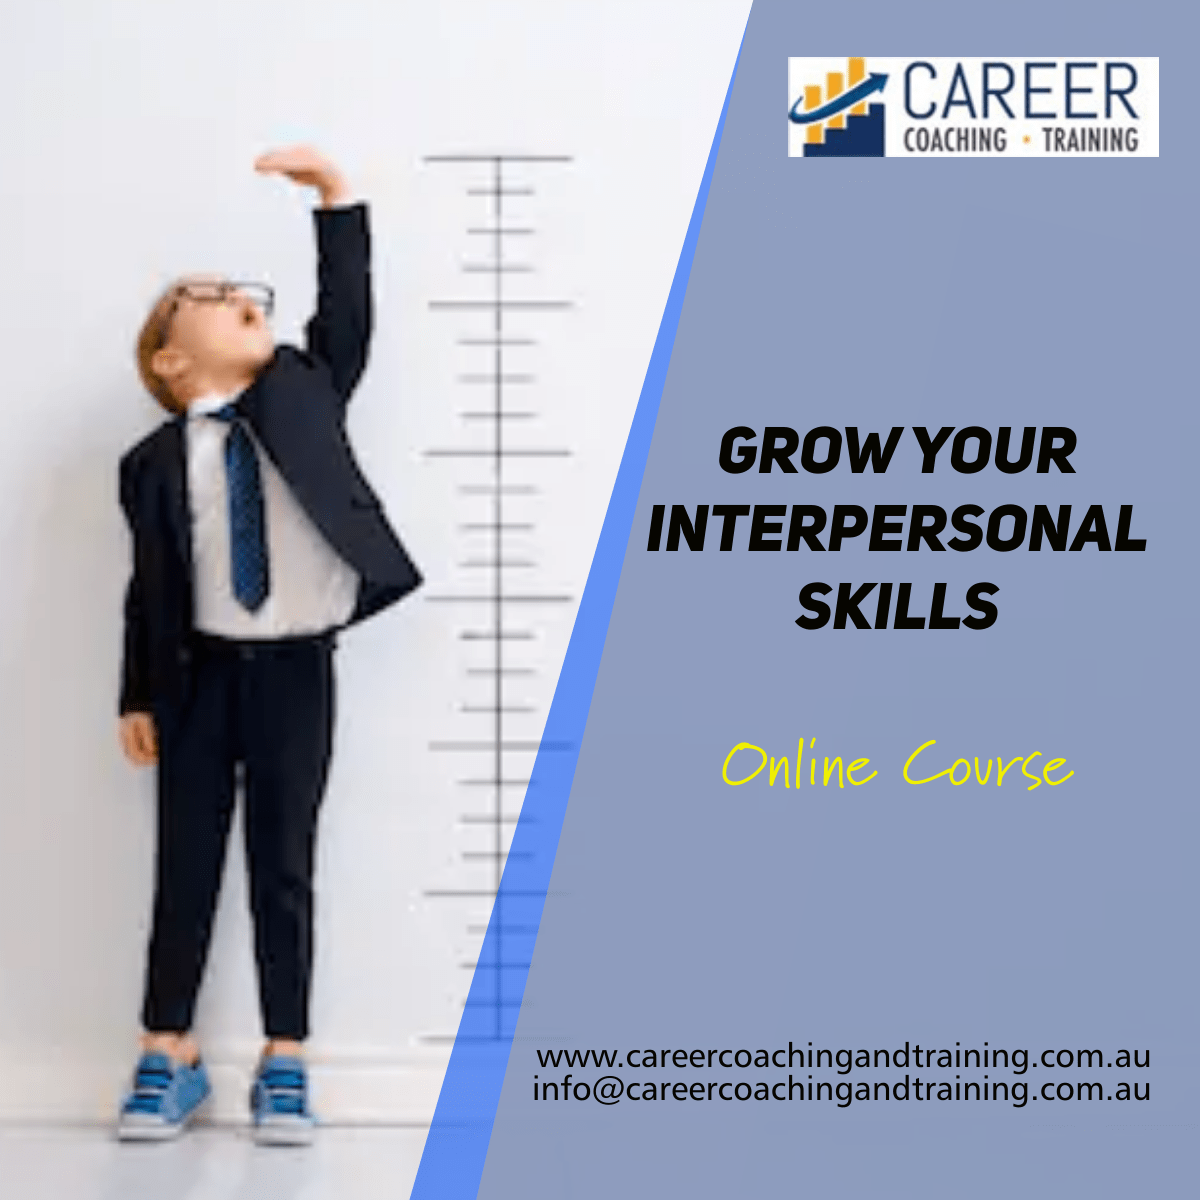 Grow your Interpersonal Skills 2